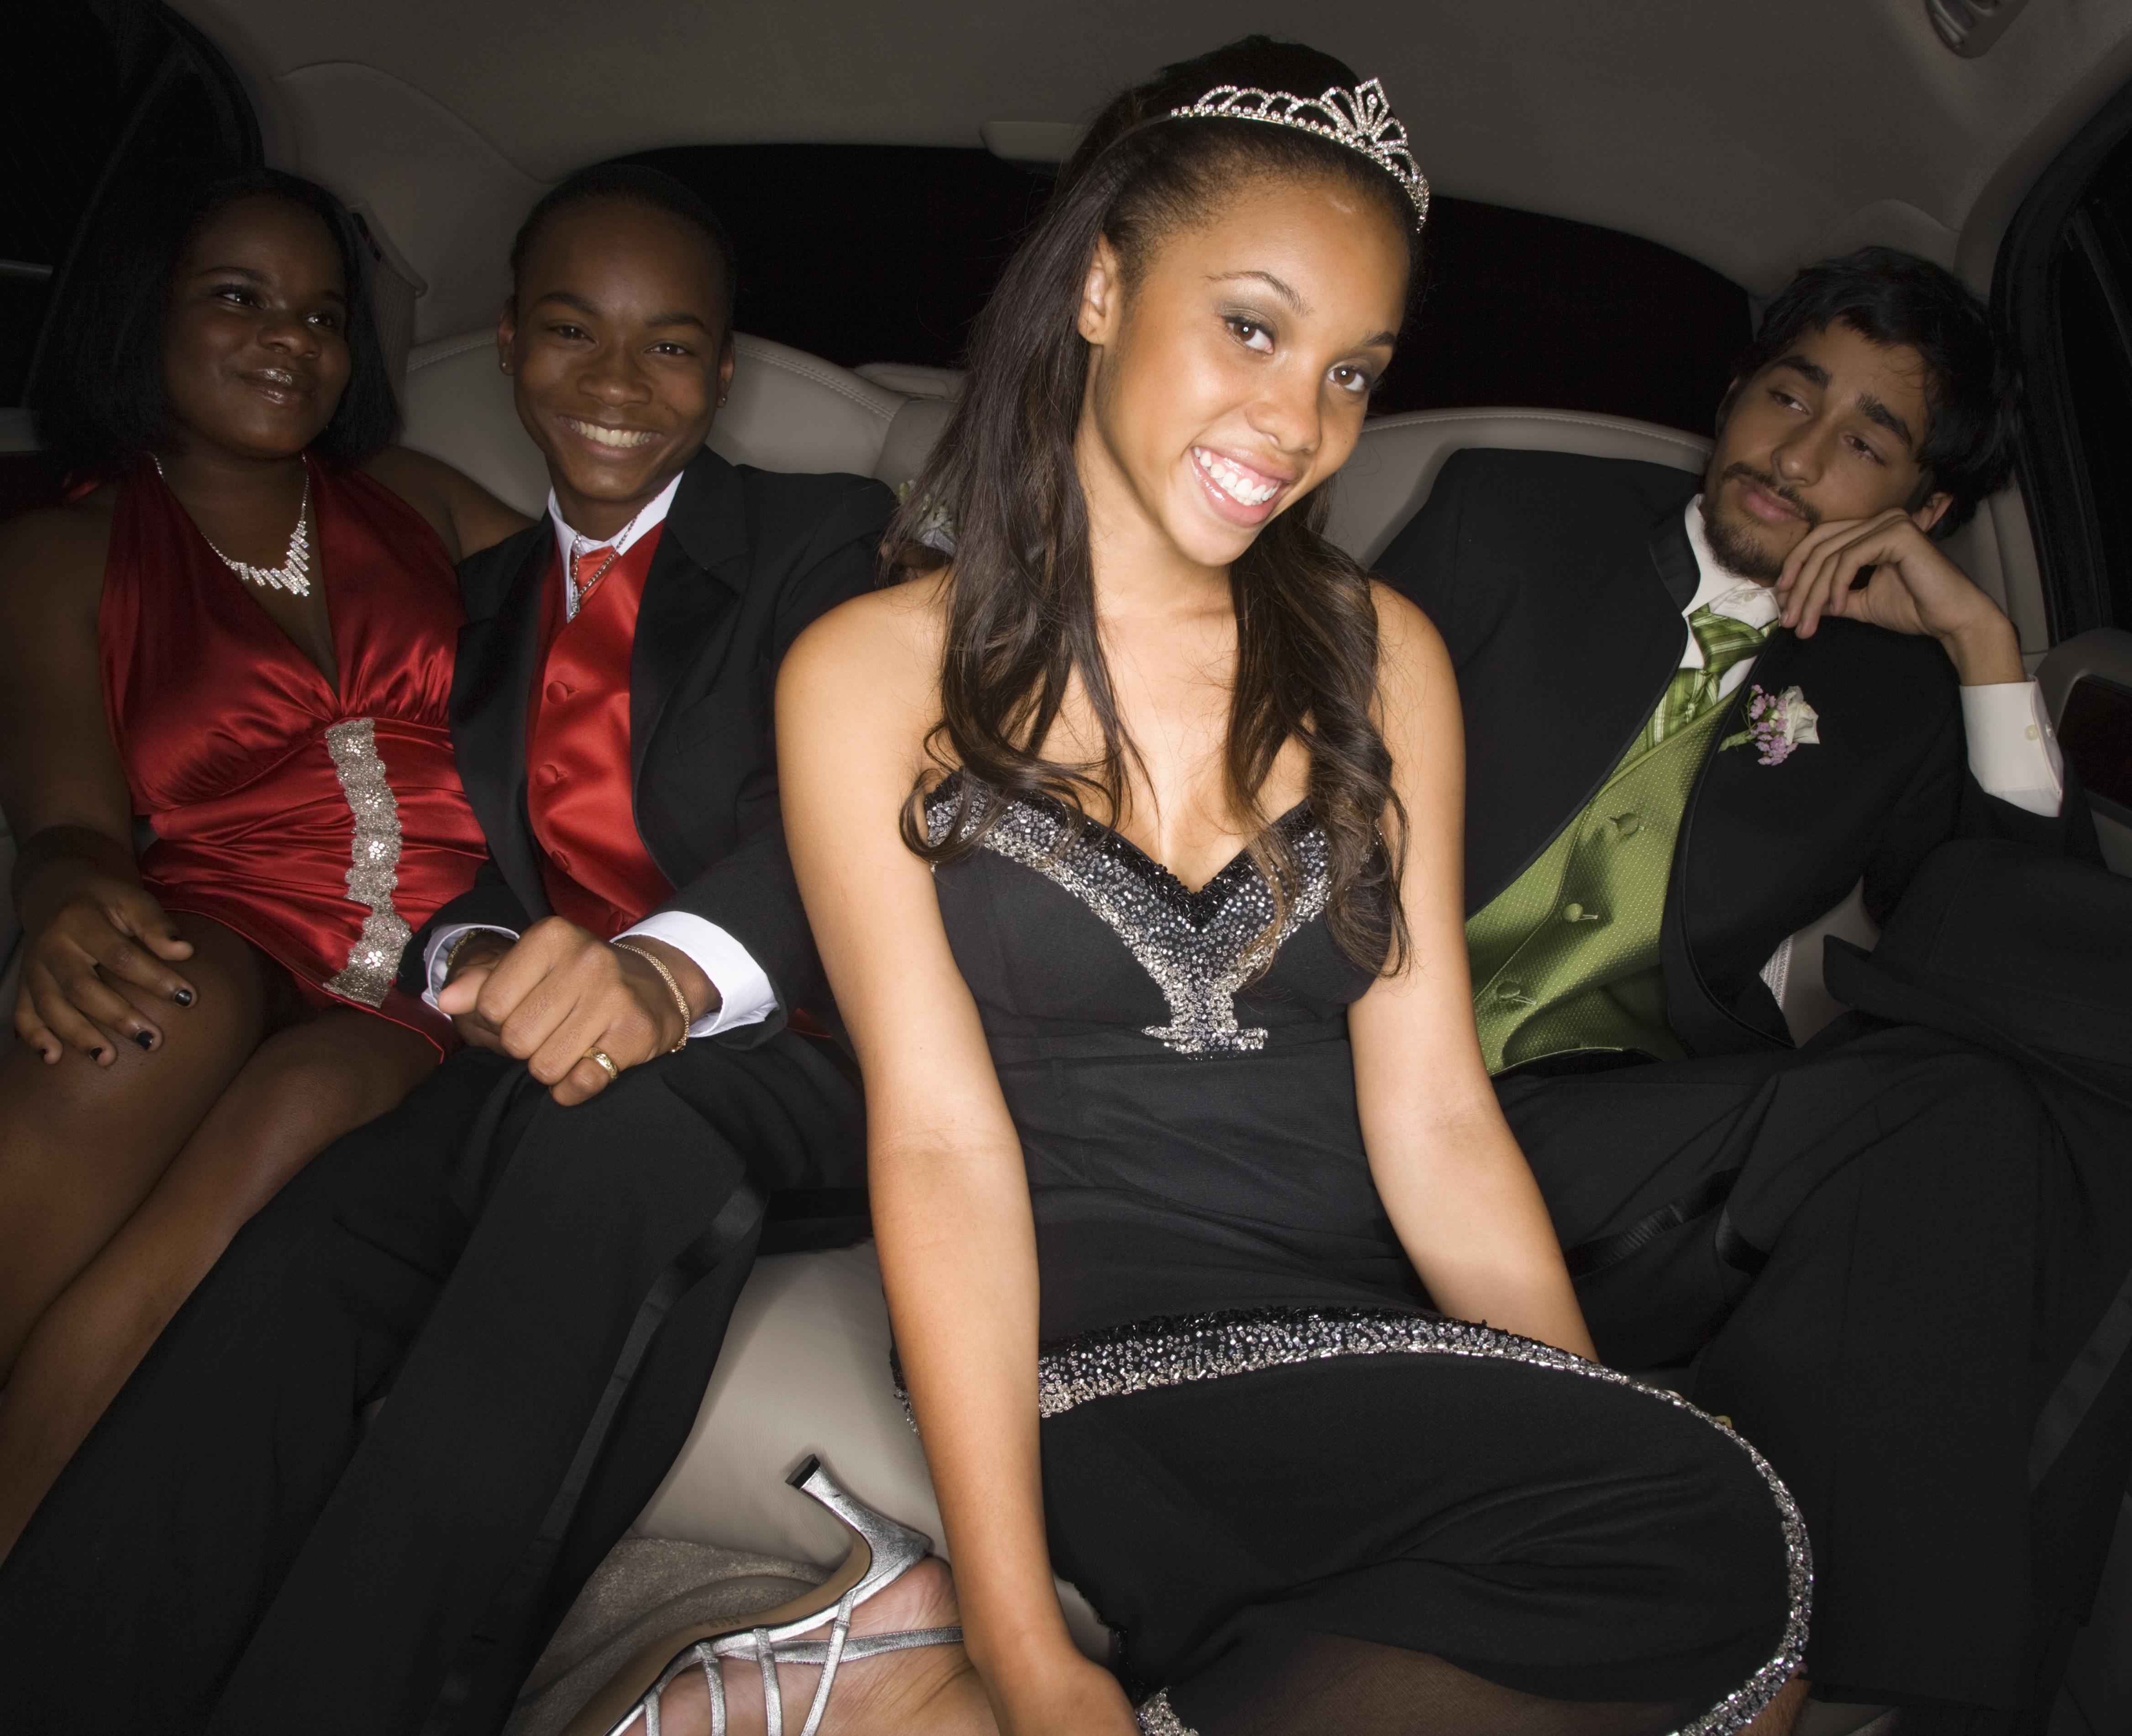 Multi-ethnic teenagers in limousine